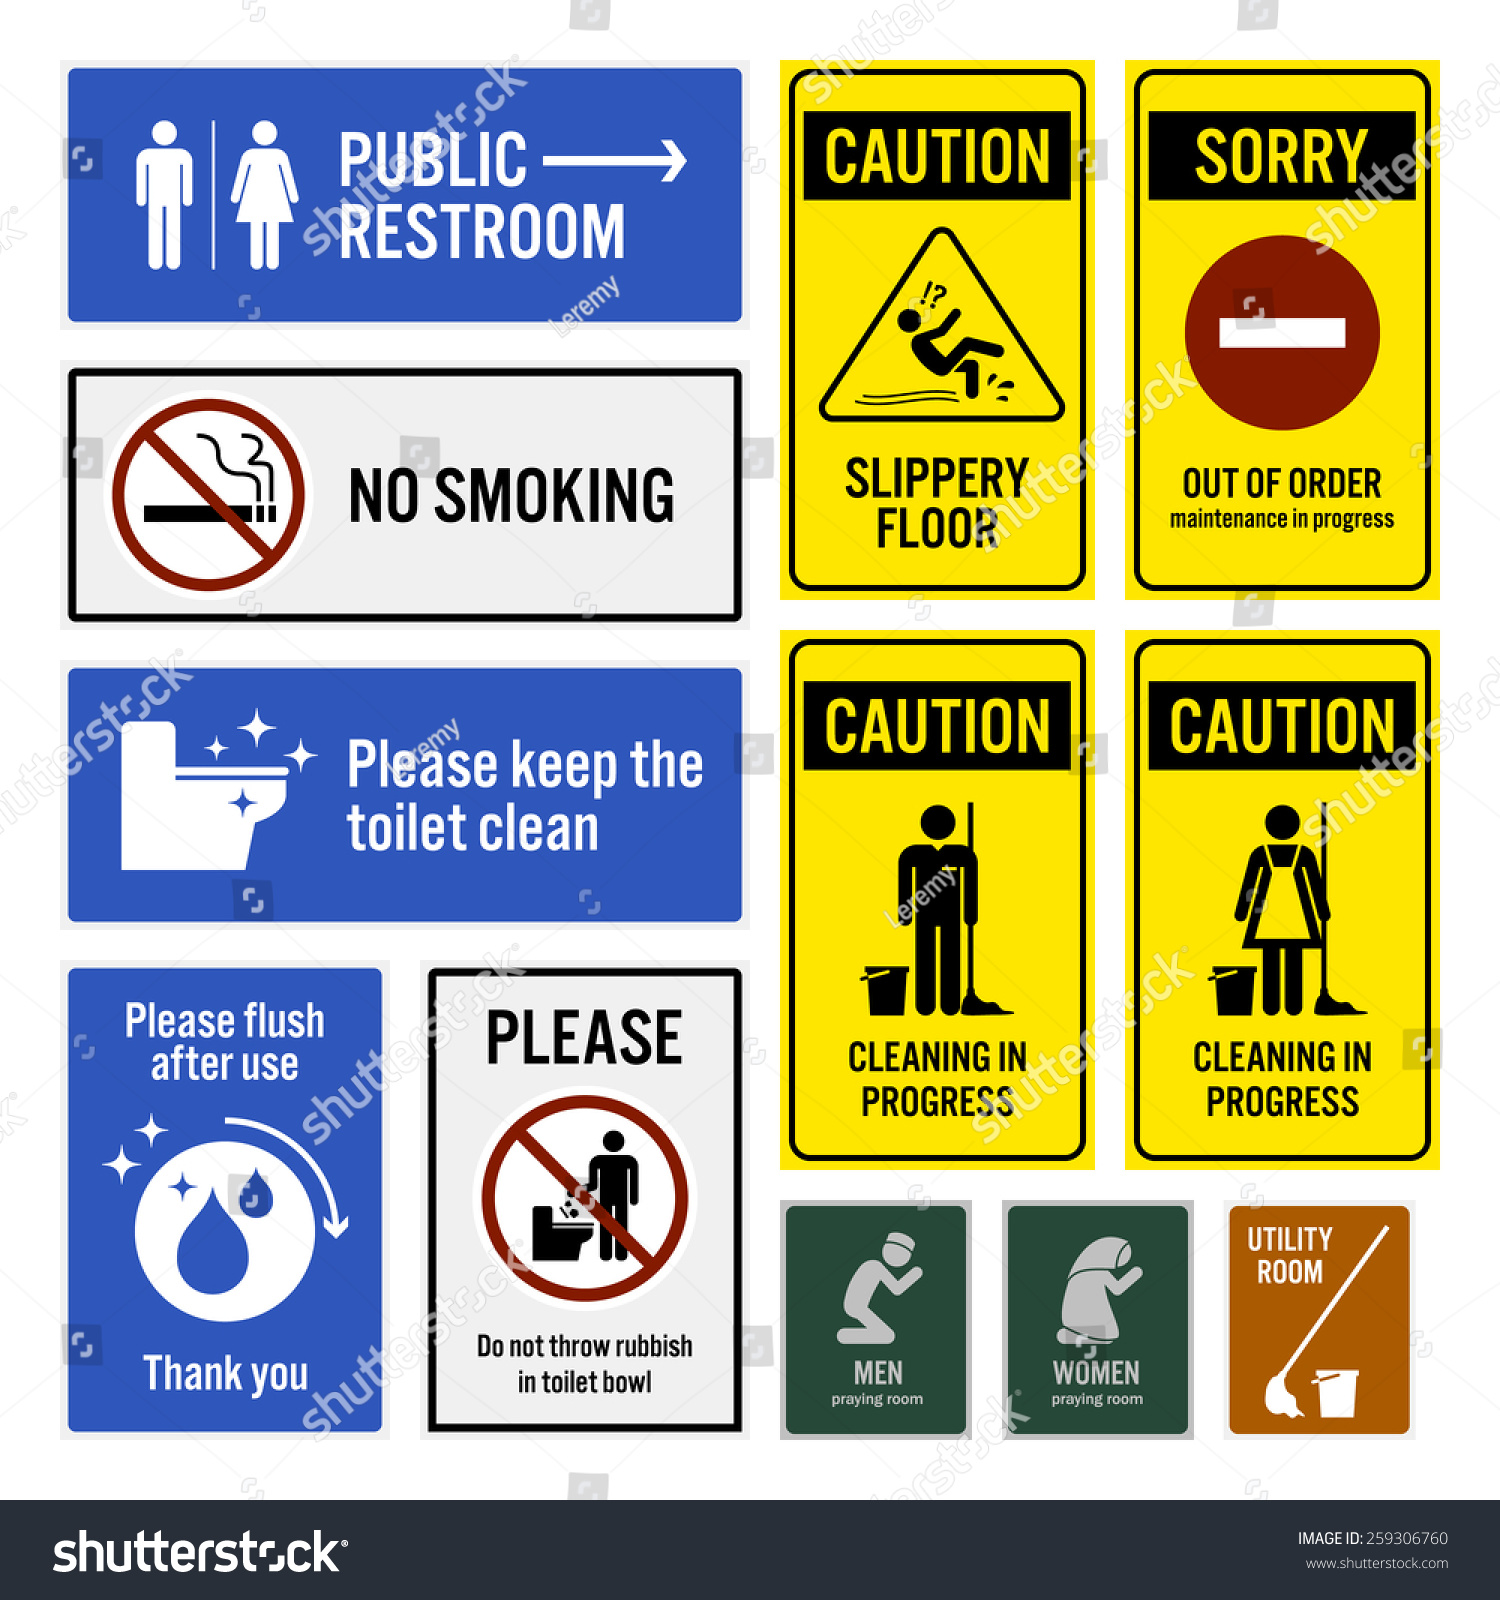 Toilet Notice and Restroom Warning Sign Signboards. Toilet Notice Restroom Warning Sign Signboards Stock Vector